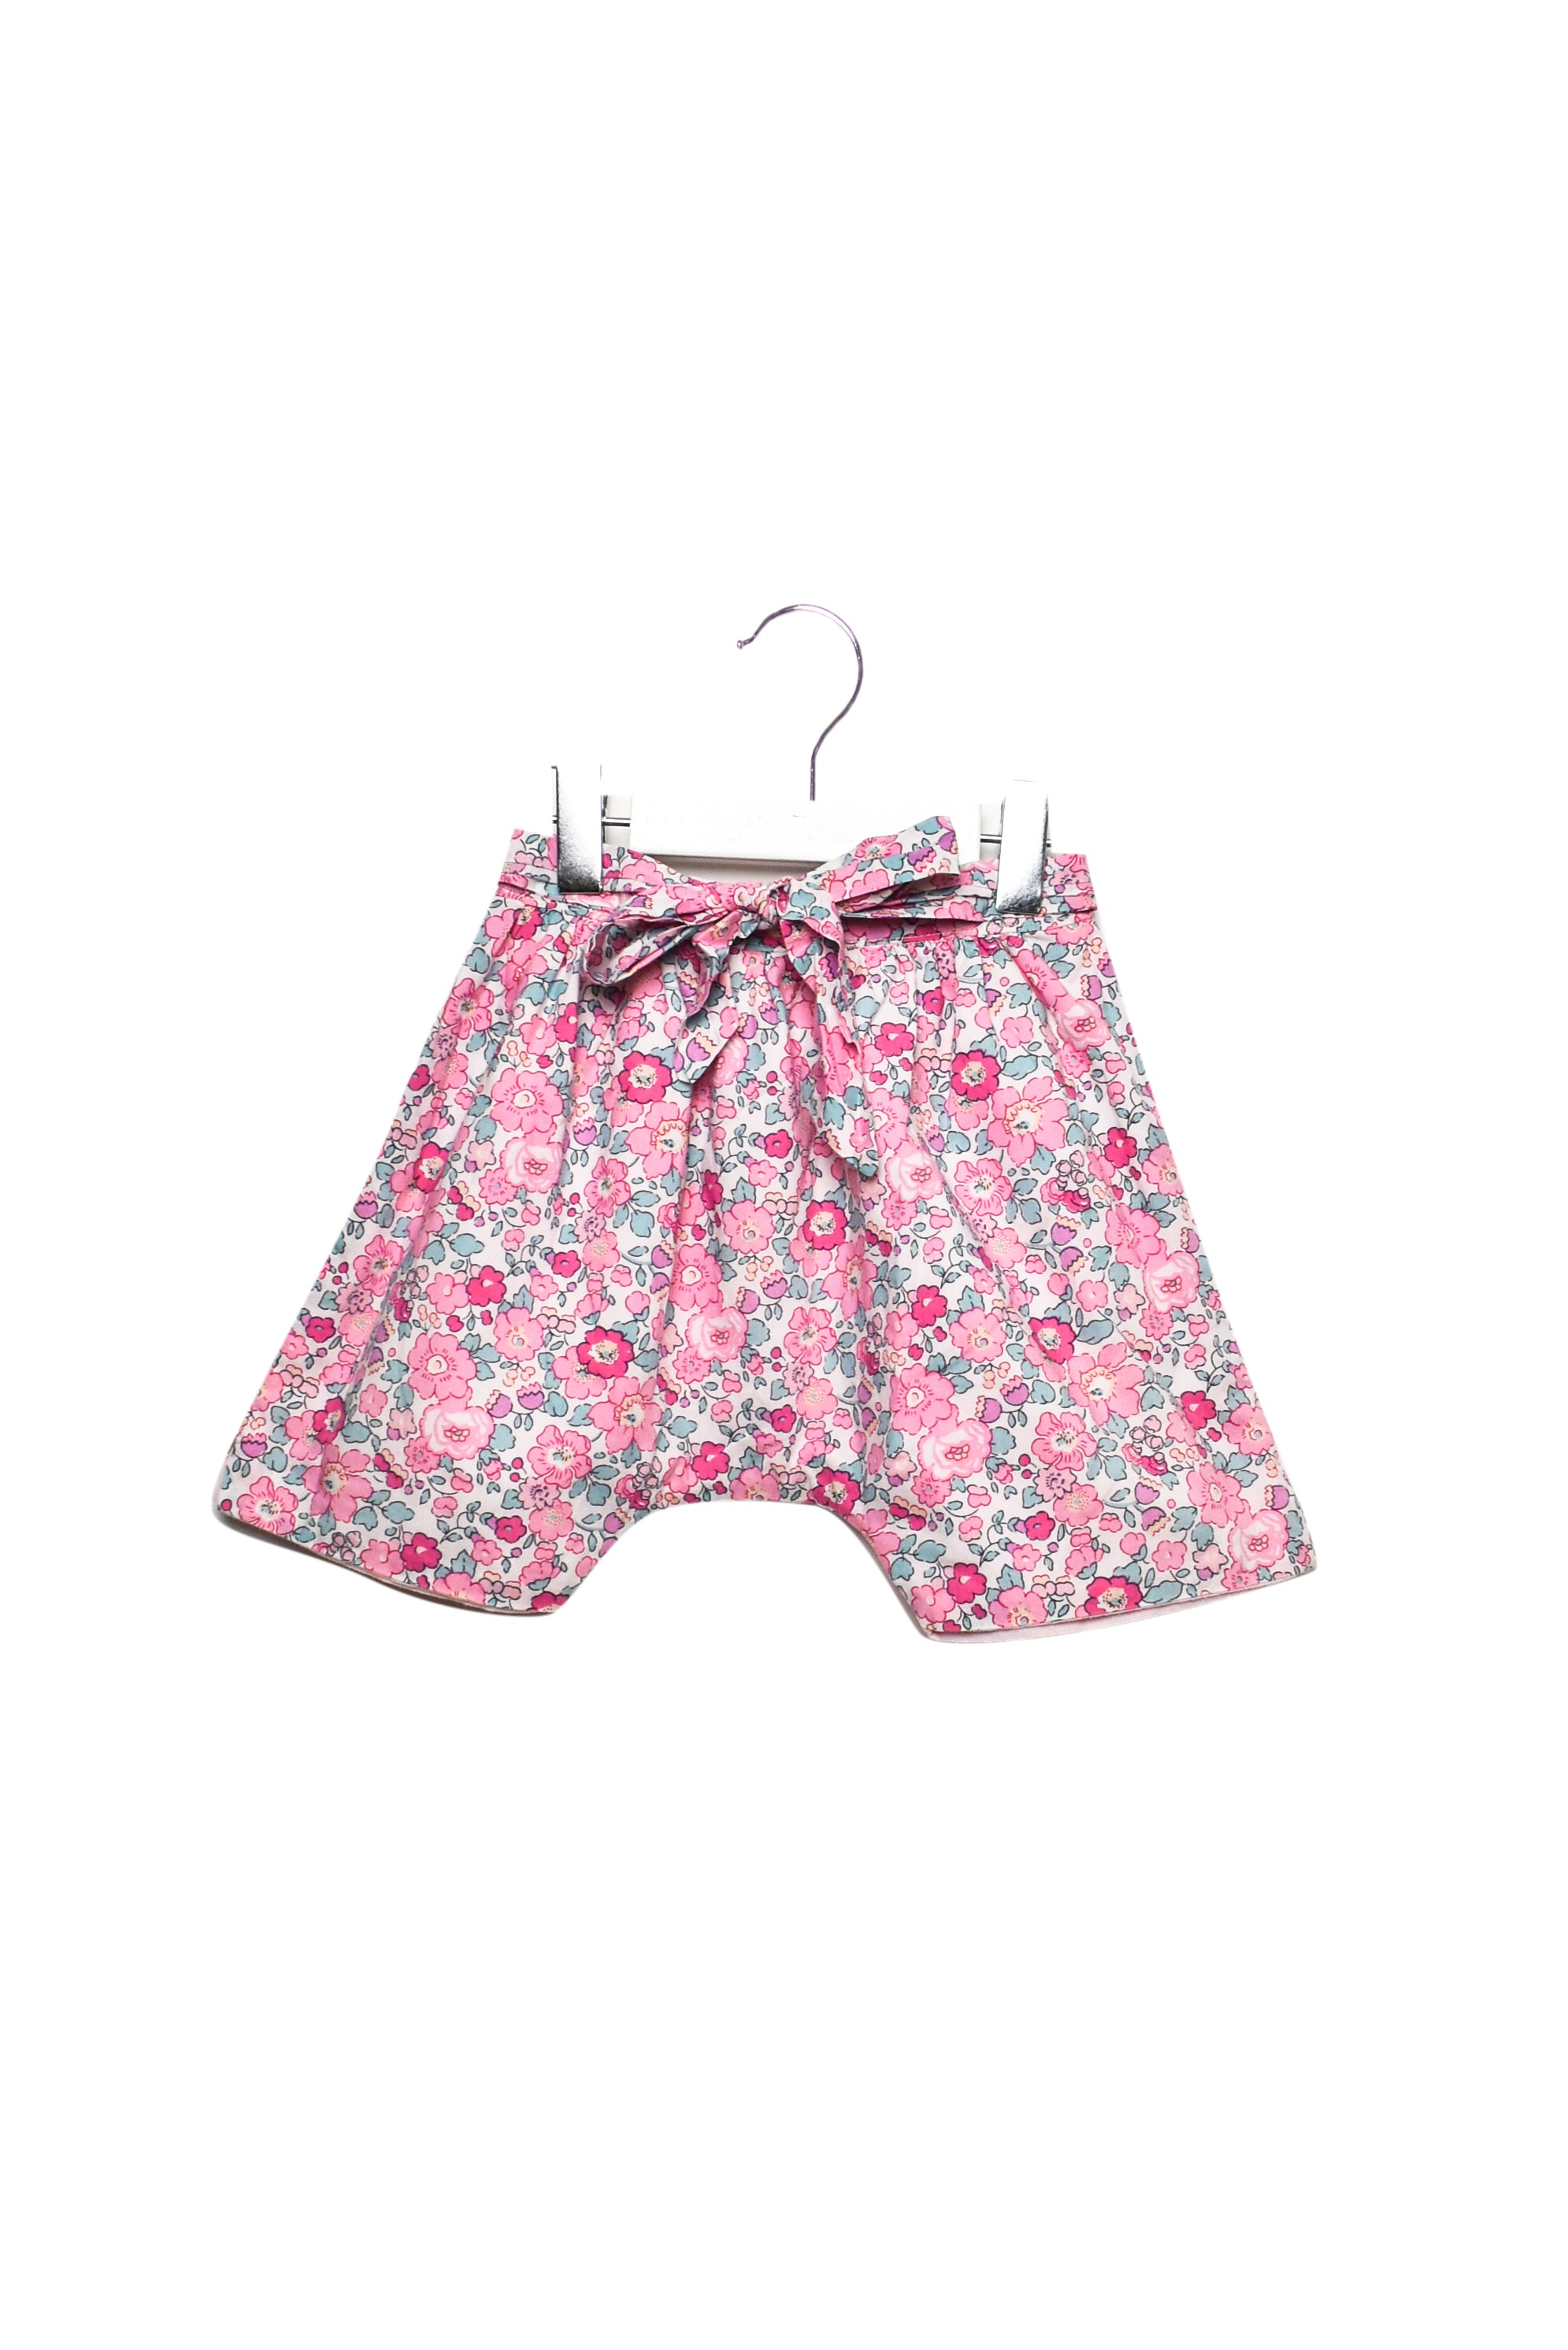 10014702 Oona L'Ourse Kids ~ Shorts 3-4T at Retykle